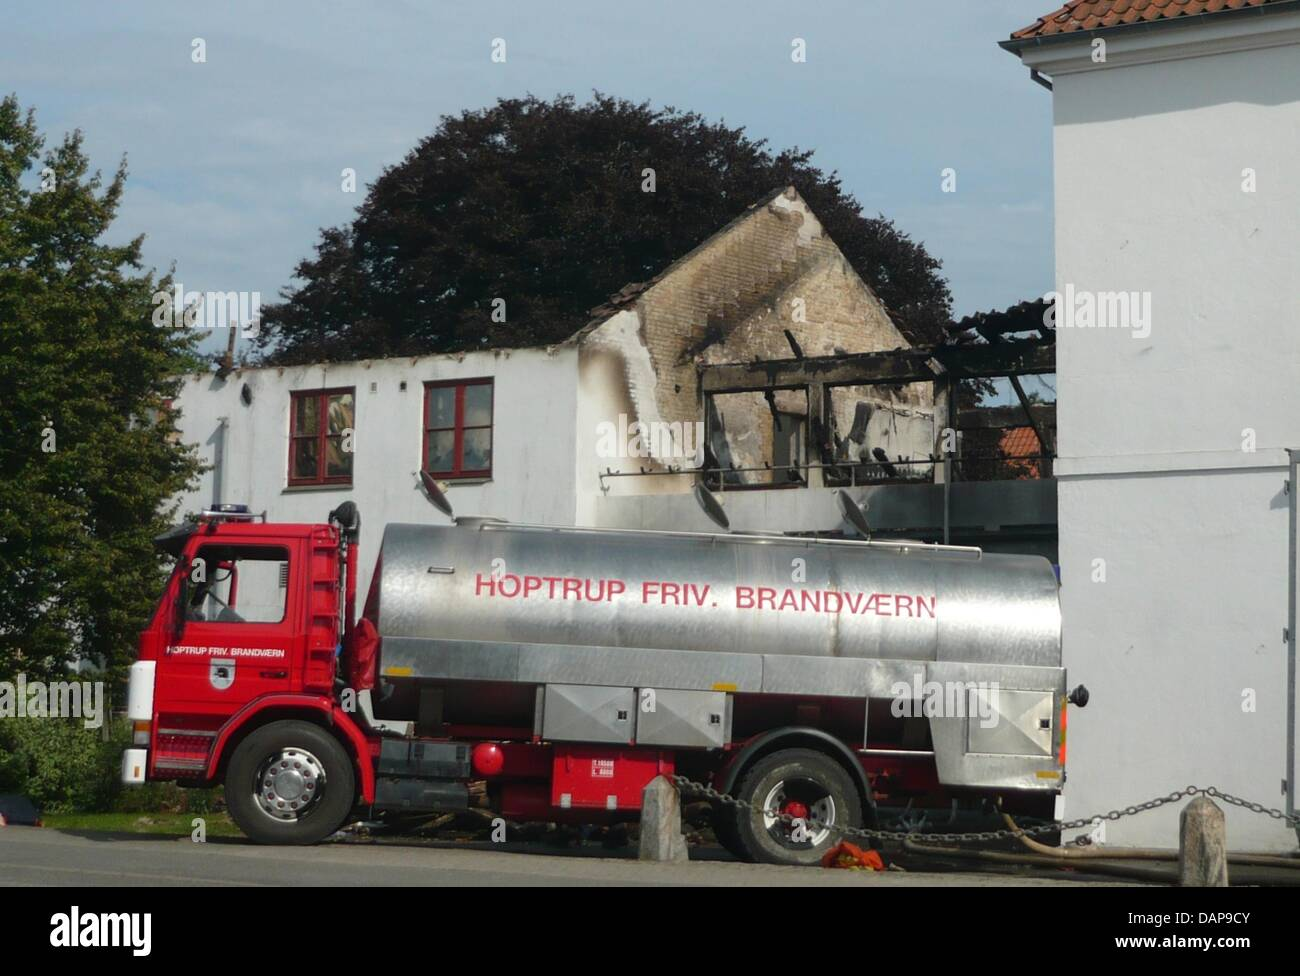 A vehicle of the volunteer fire department Hoptrup stands in front of a burnt out school hall of residence 'Hoptrup - Stock Image